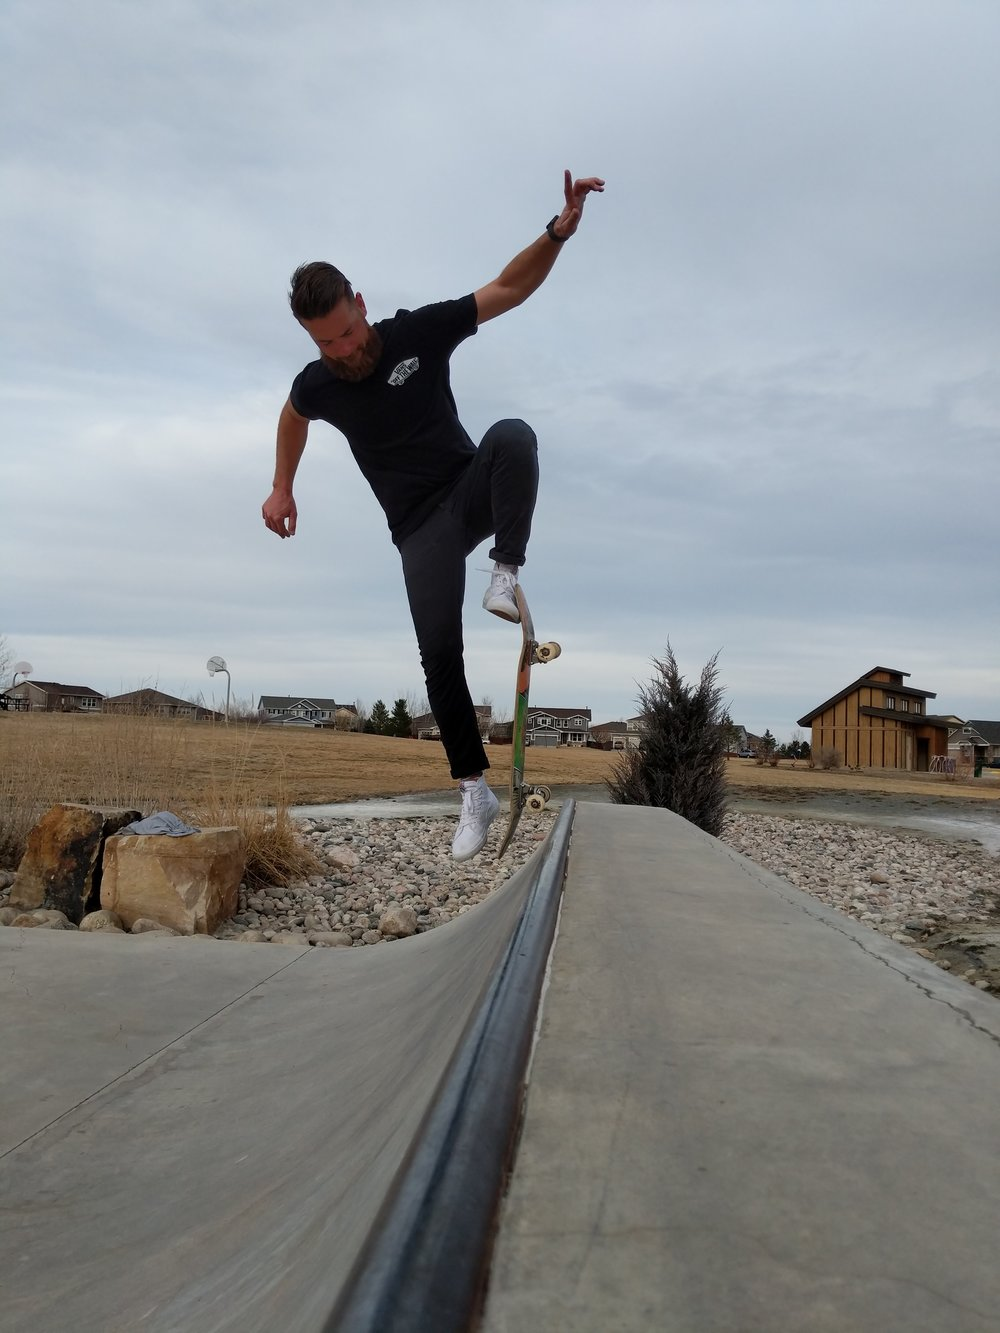 Stoked to see this inspirational moment of Mark fully committed to his blunt in Fort Collins, Colorado last Wednesday.